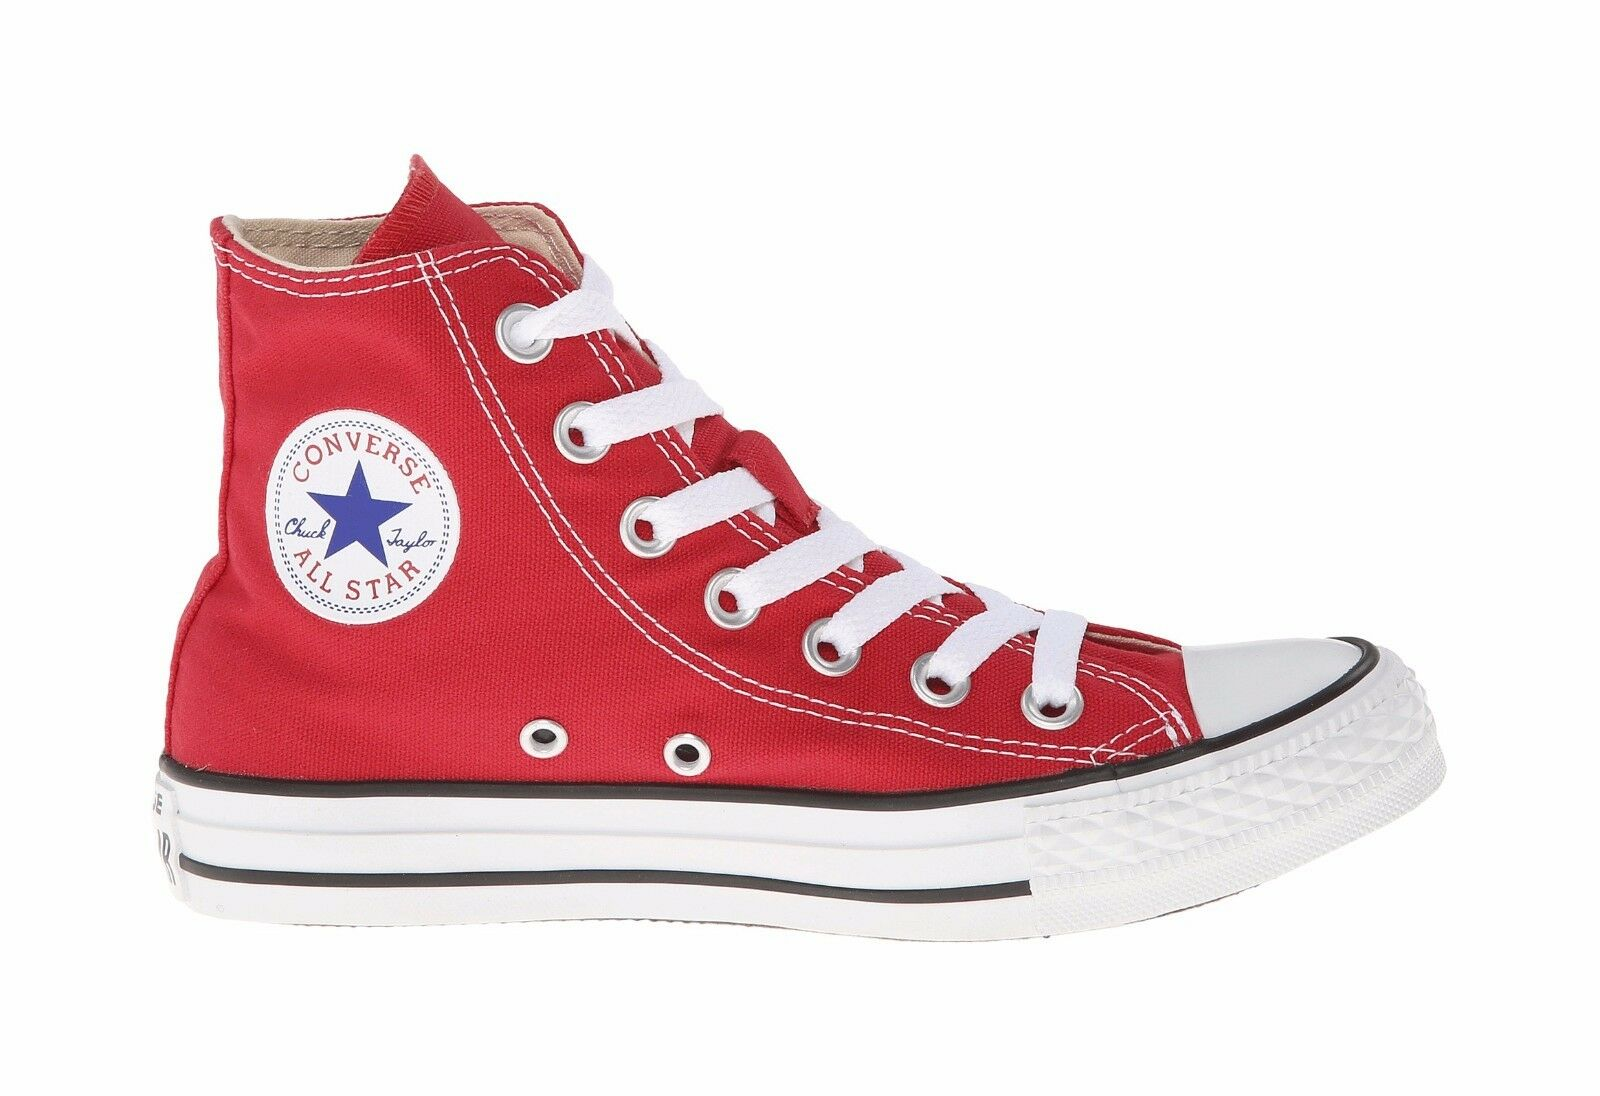 8bd045cd9fe1 Converse Chucks All Star Hi Shoes Trainers Leisure Red M9621 WOW EUR ...